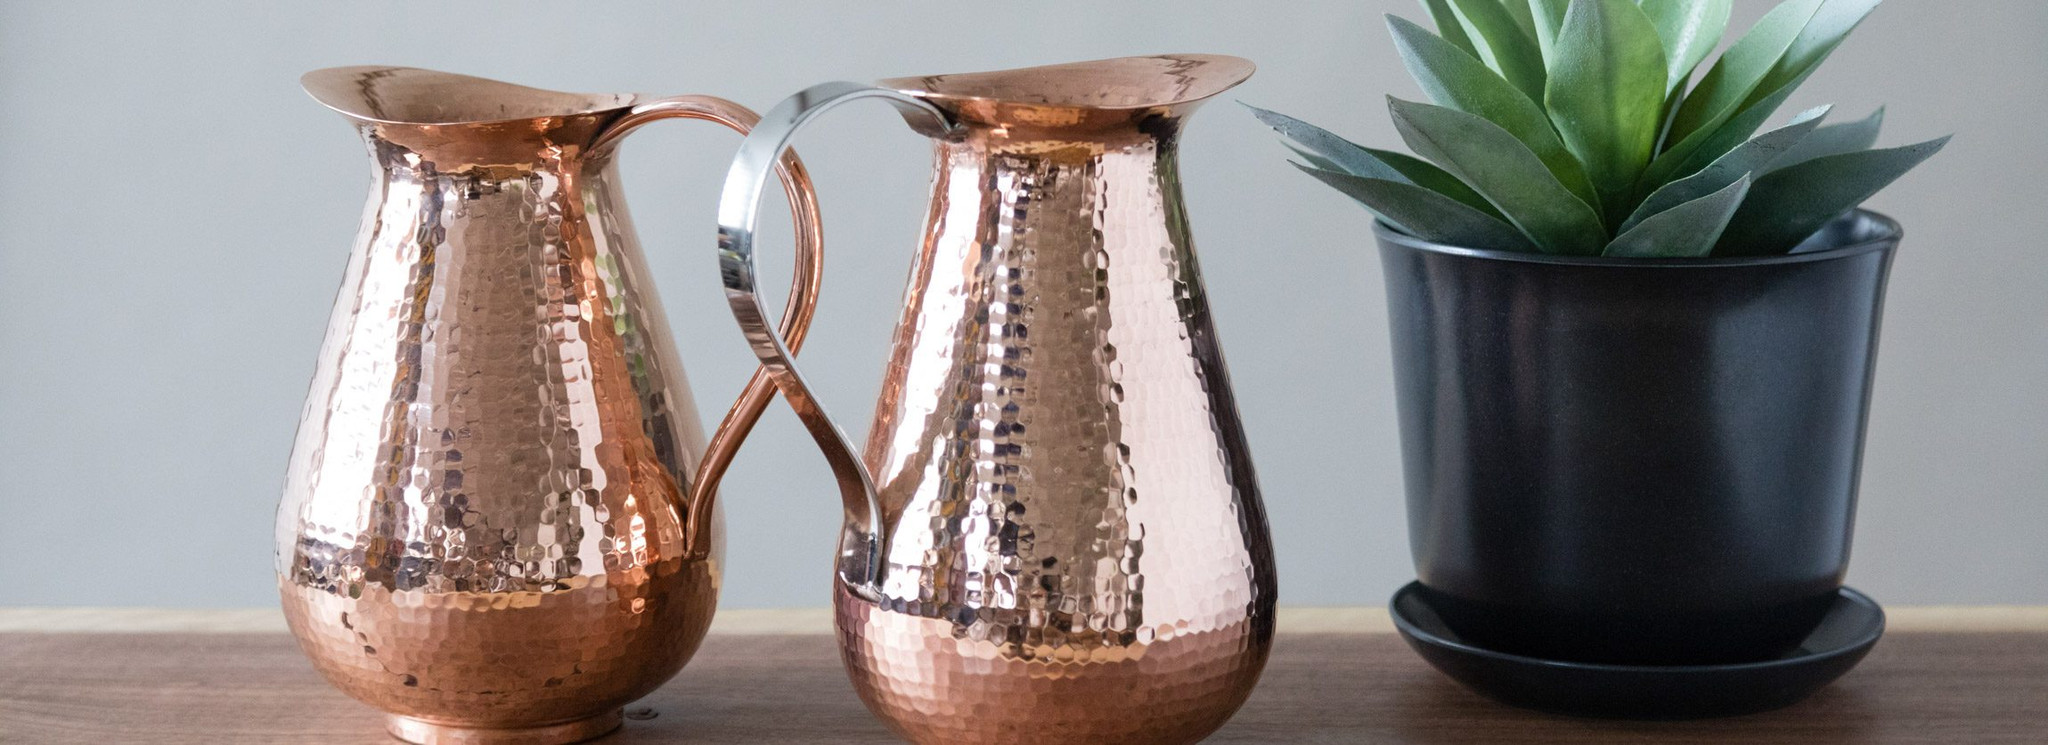 Featured: Pure Copper Water Pitchers from Sertodo Copper